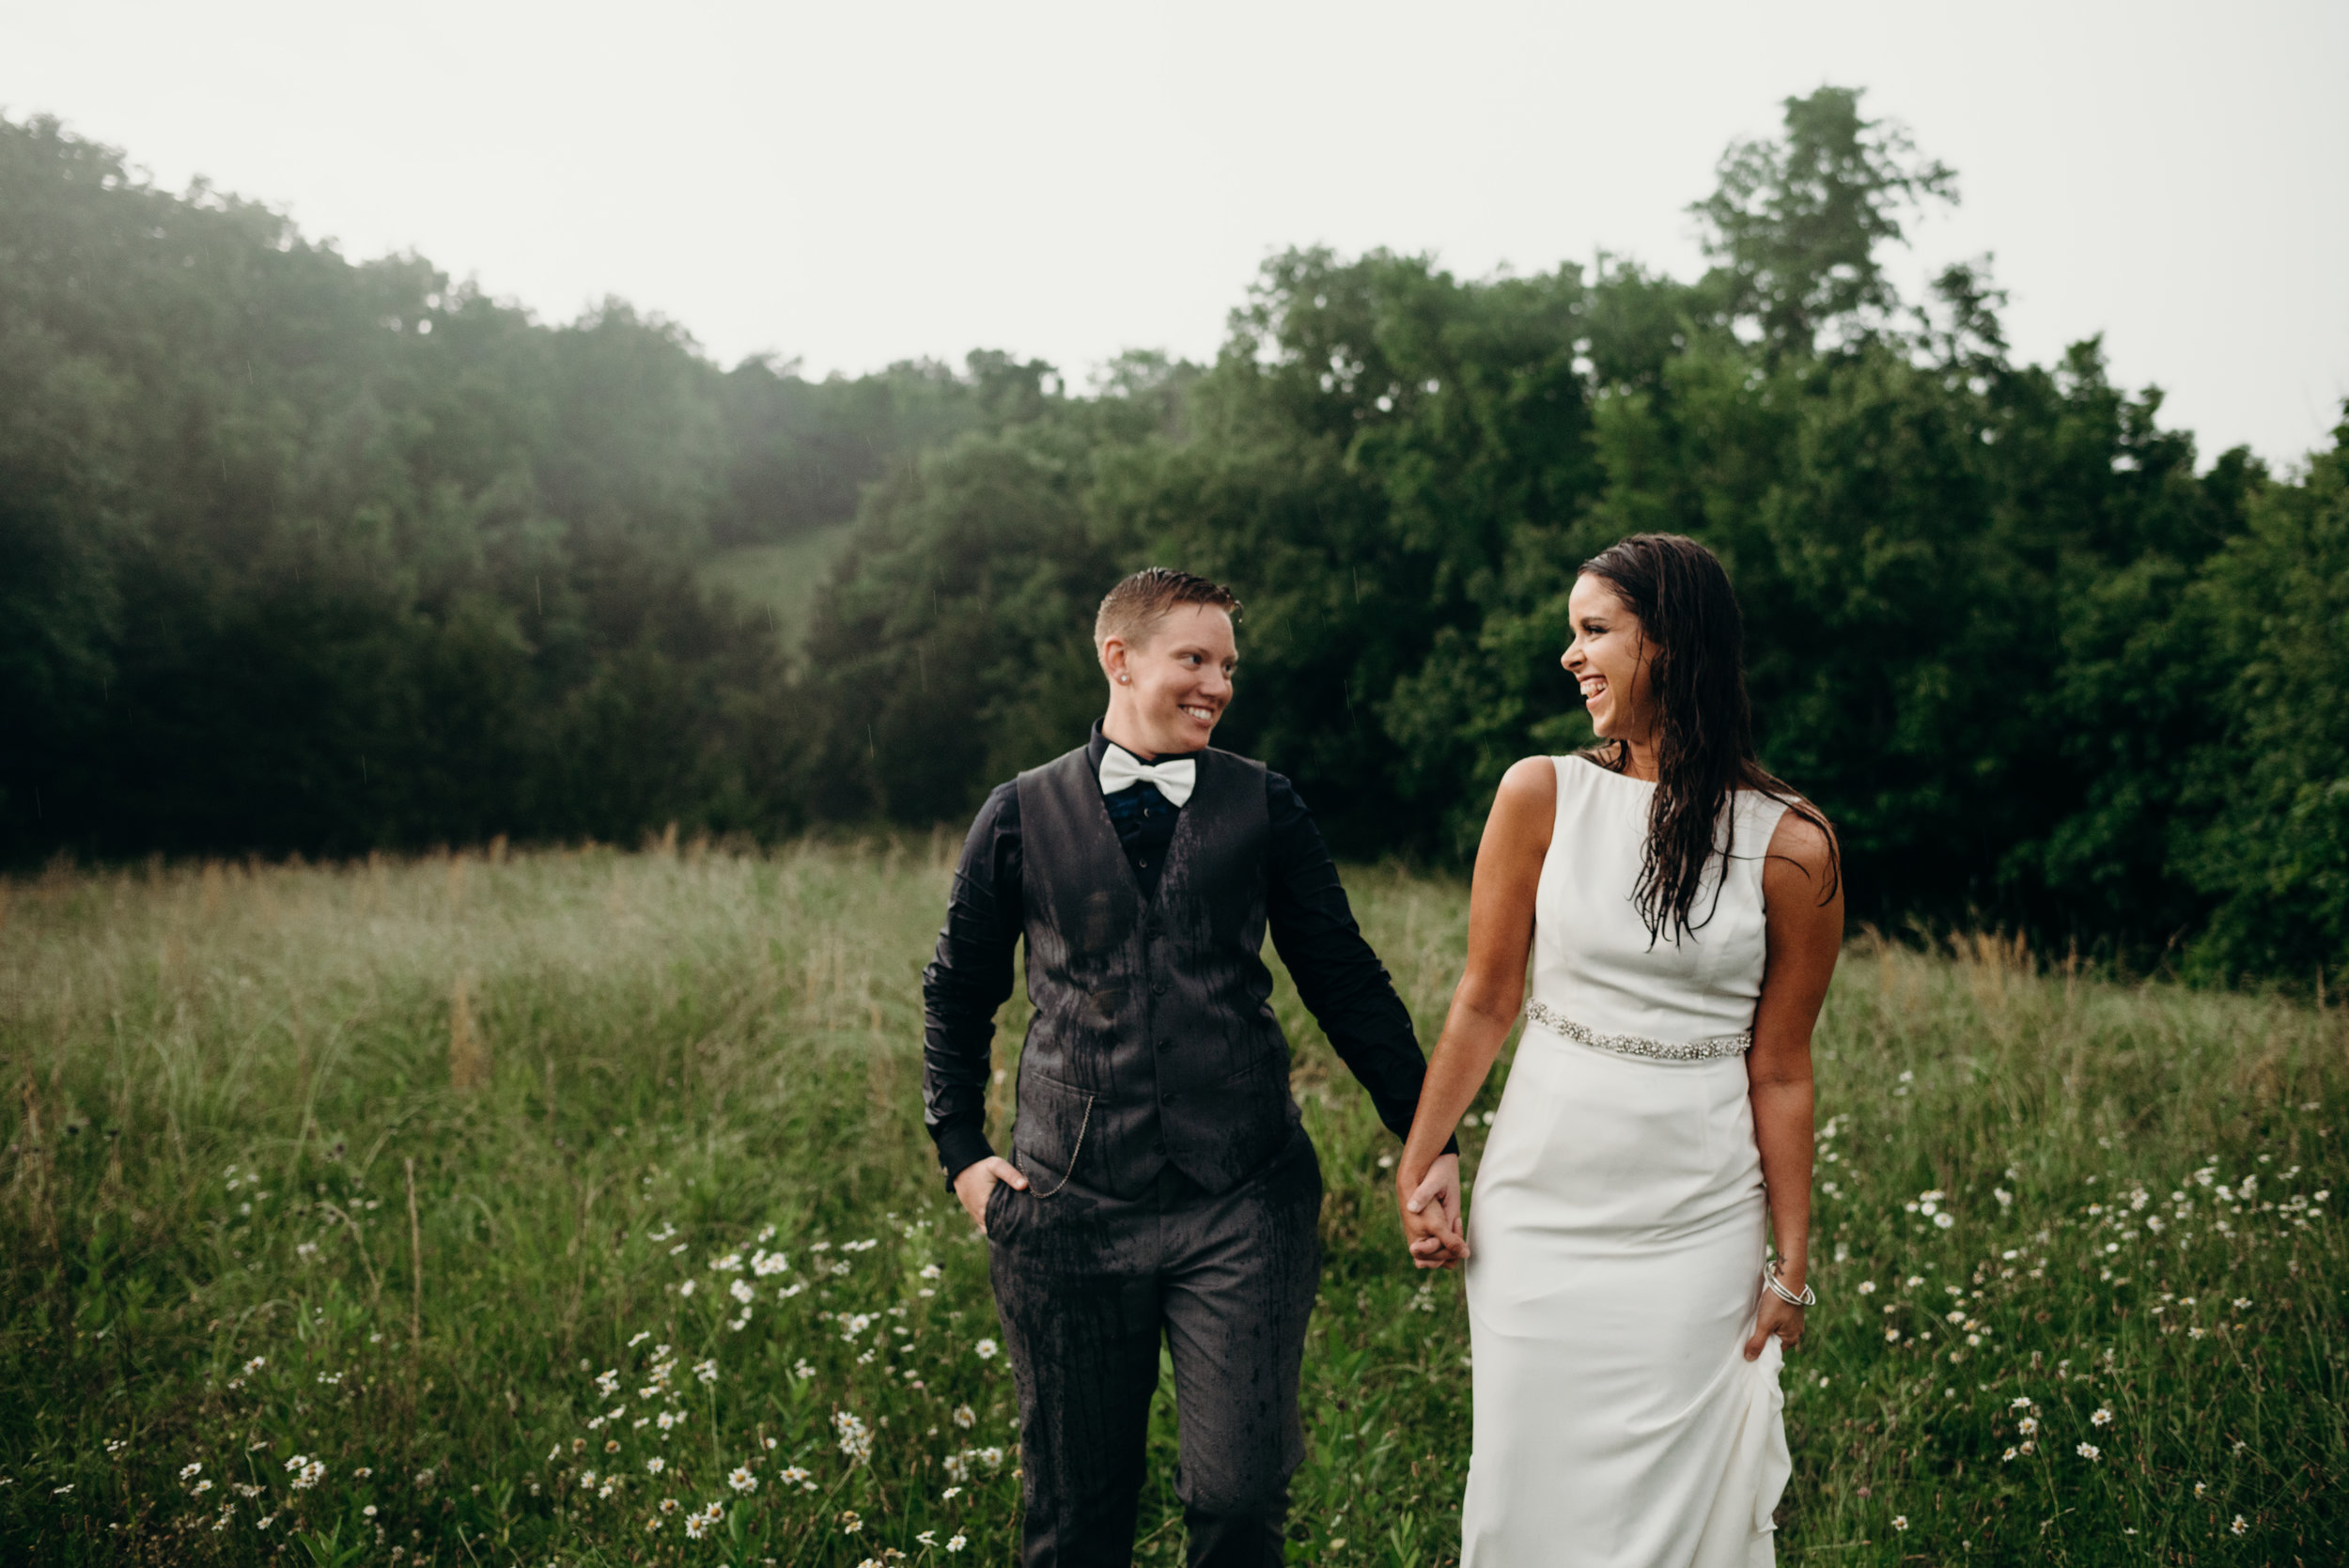 post-wedding photography session with newlywed couple holding hands and smiling at each other while walking in a field